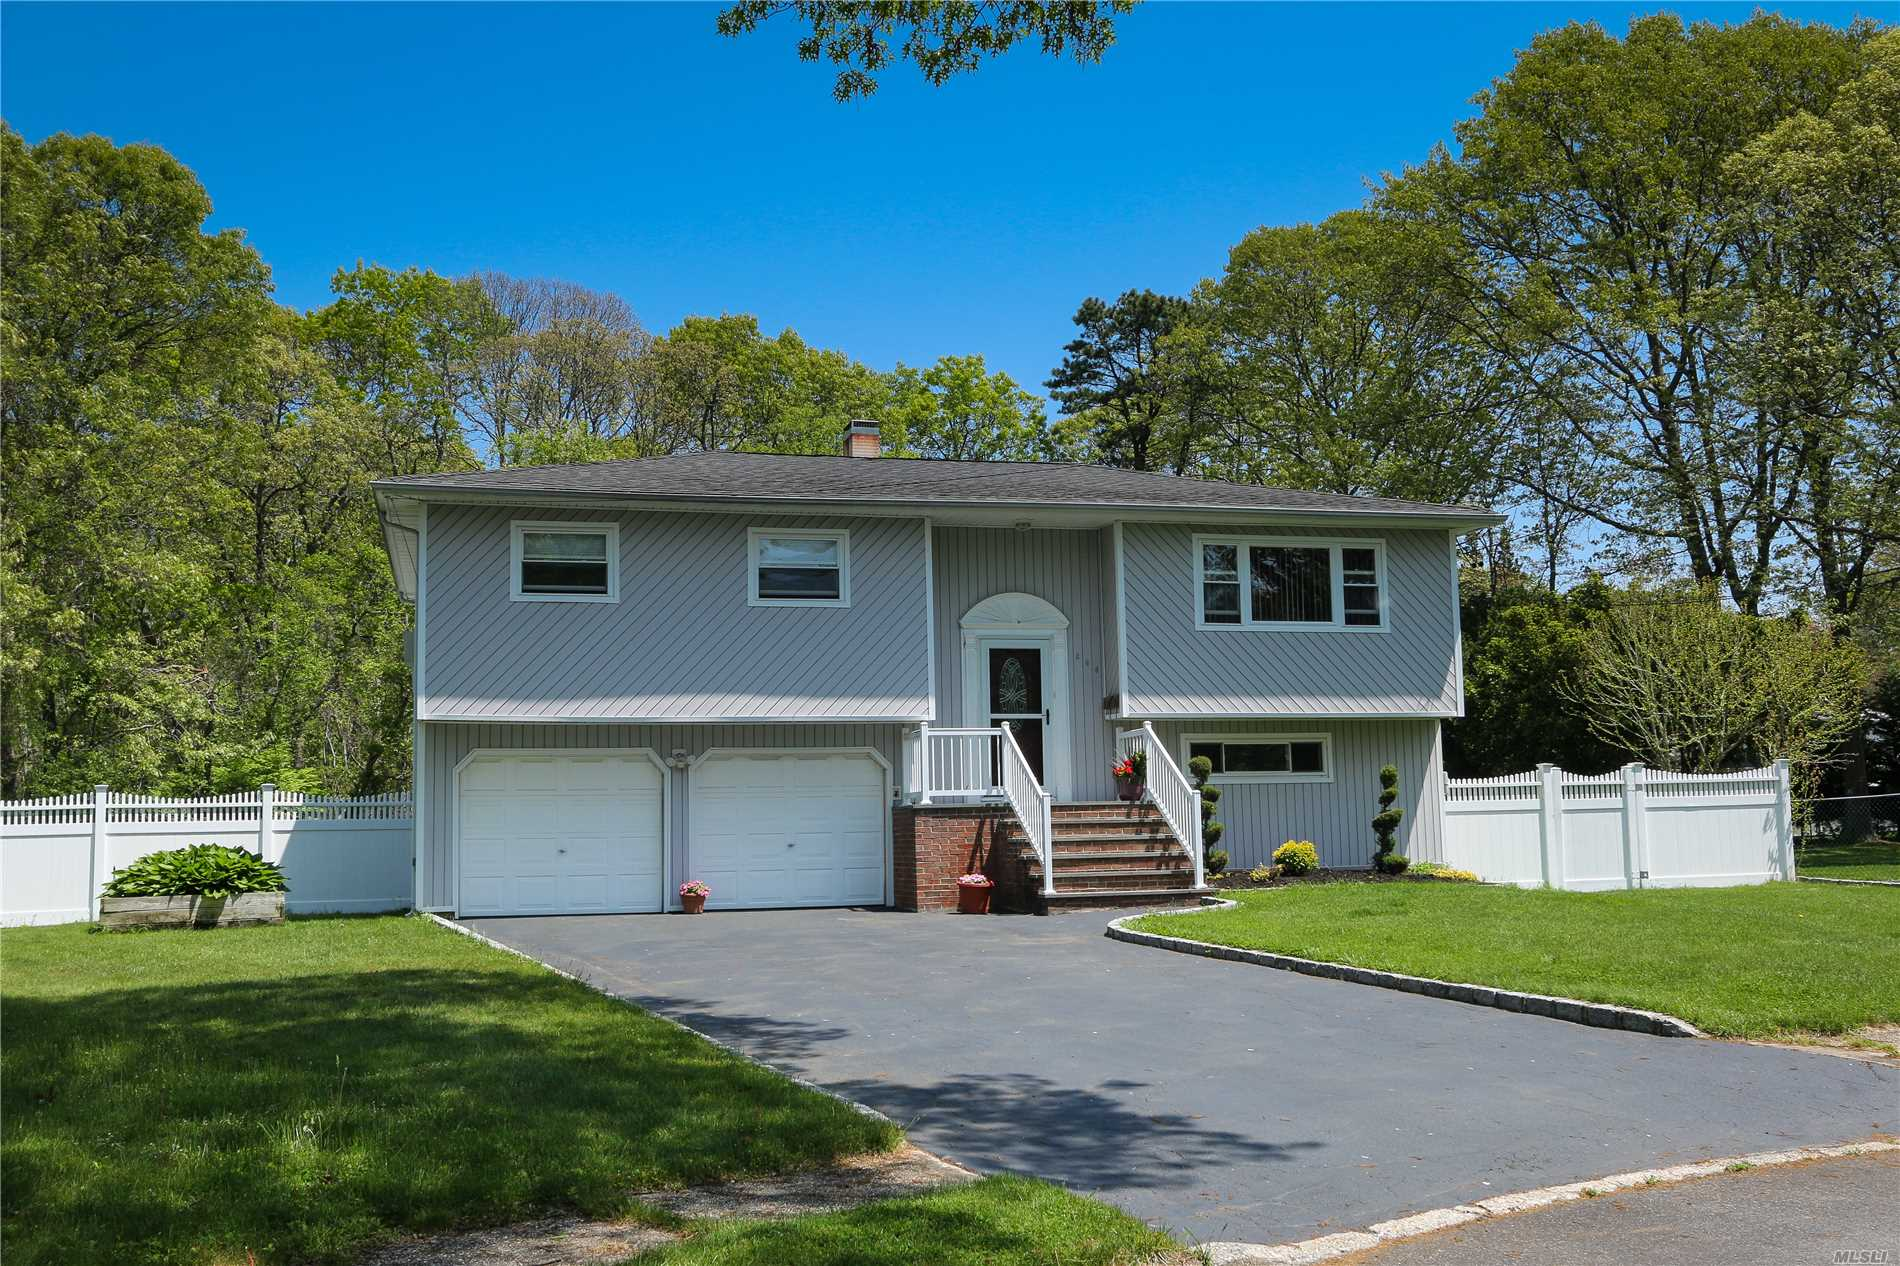 Move in Ready Home in Sayville School District. Nestled on a quiet Cul de Sac, this home over looks a quiet nature preserve. The large deck off of the Kitchen expands your living space for outdoor entertaining. The lovely In Ground Pool has steel walls and a 2 years old Liner. Yard is fenced in for privacy.